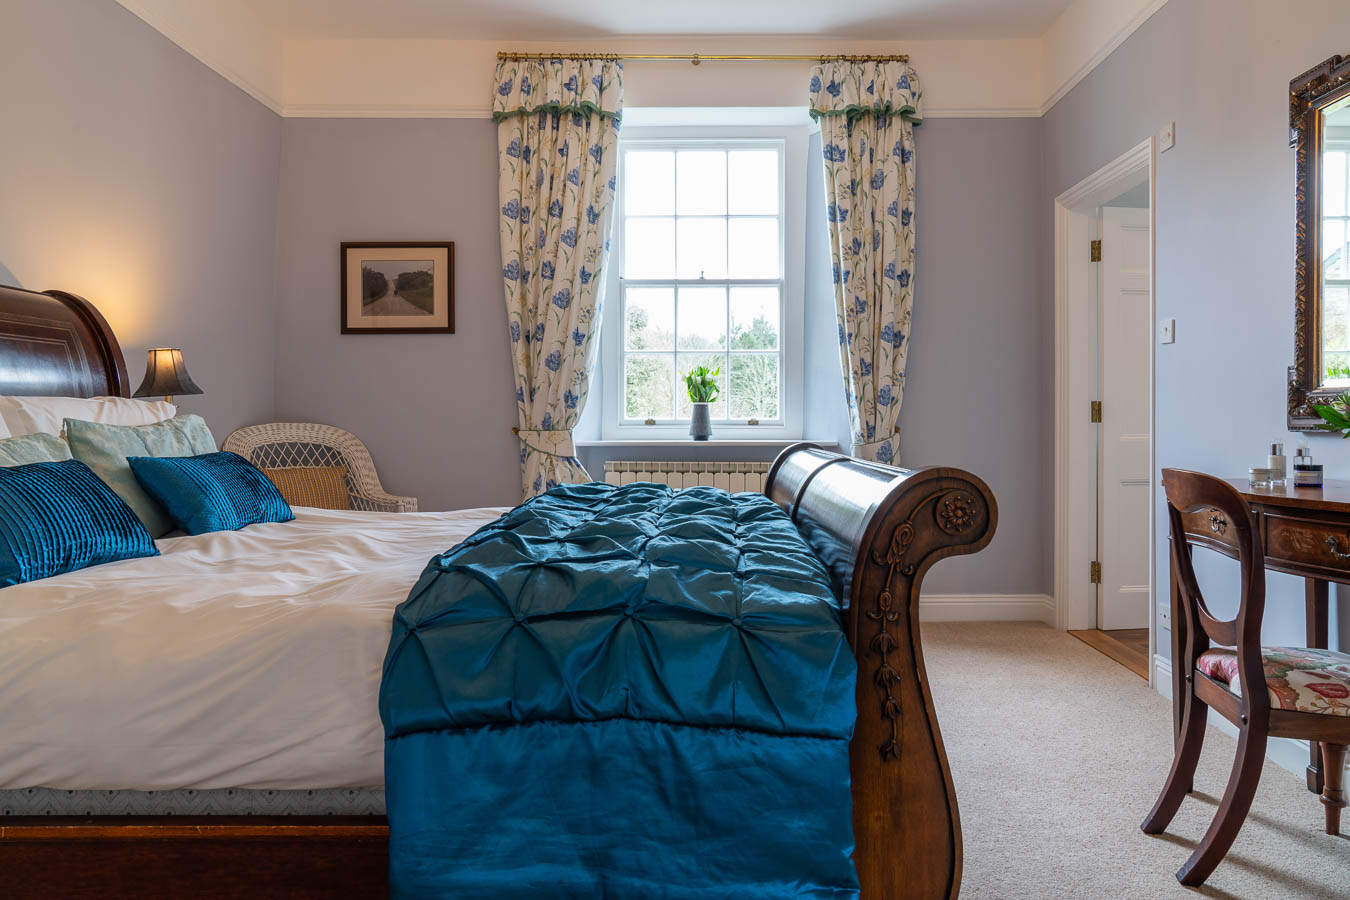 The Blue bedroom in Flear House with king size sleigh bed with matching dresser and bedsides and large sash window overlooking the front garden.